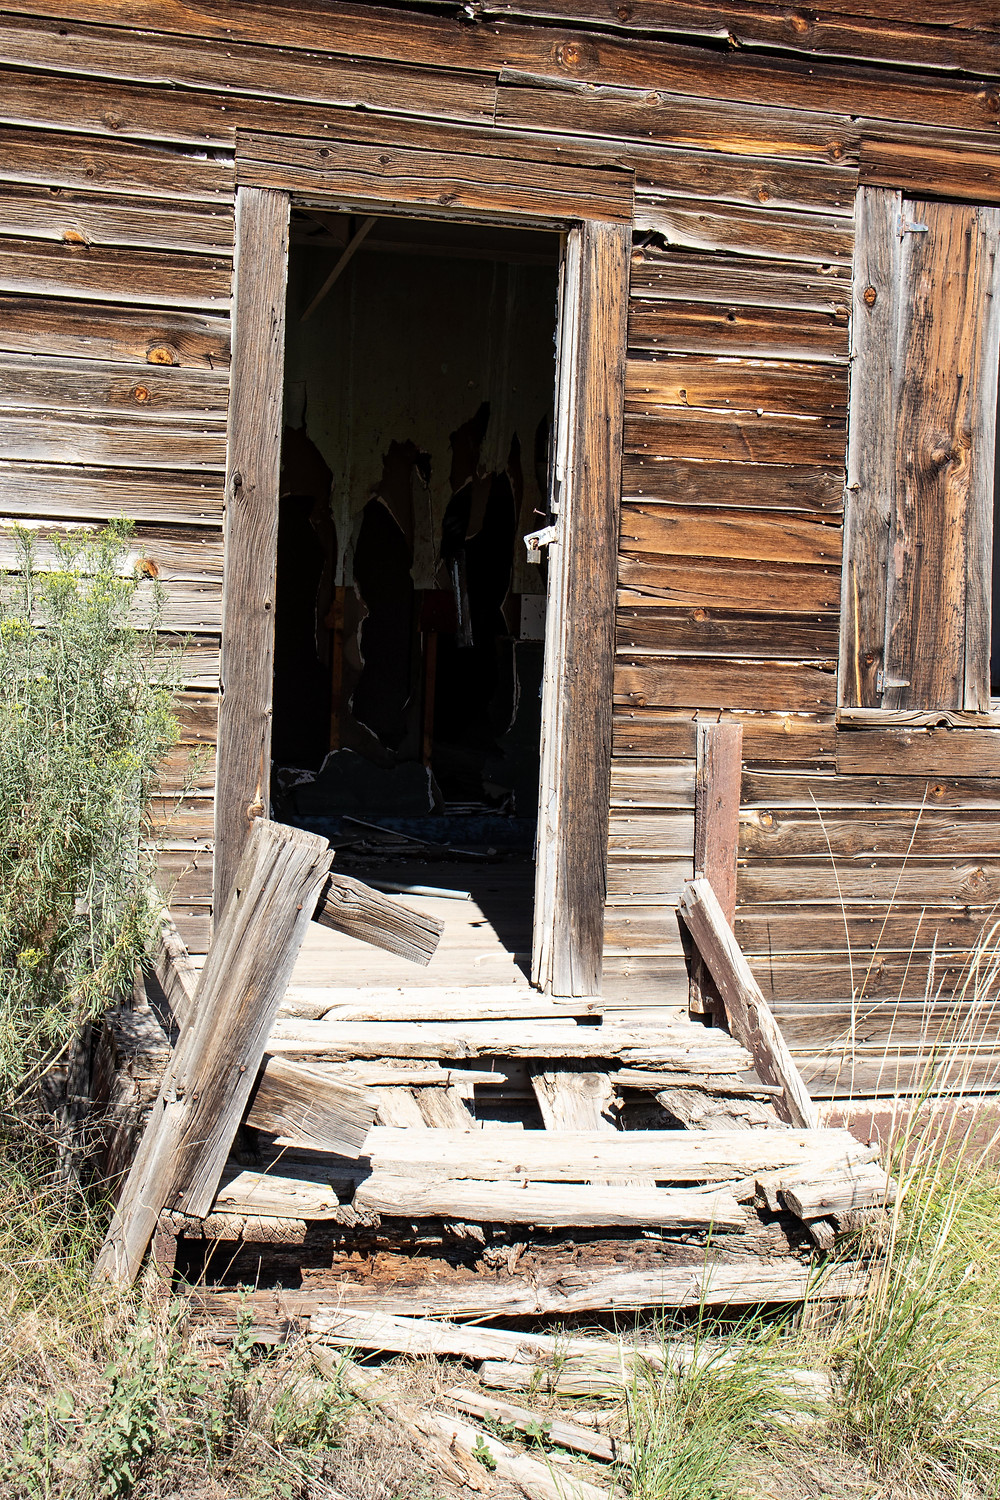 Crumbling stairs in Pagosa Junction ghost town building.